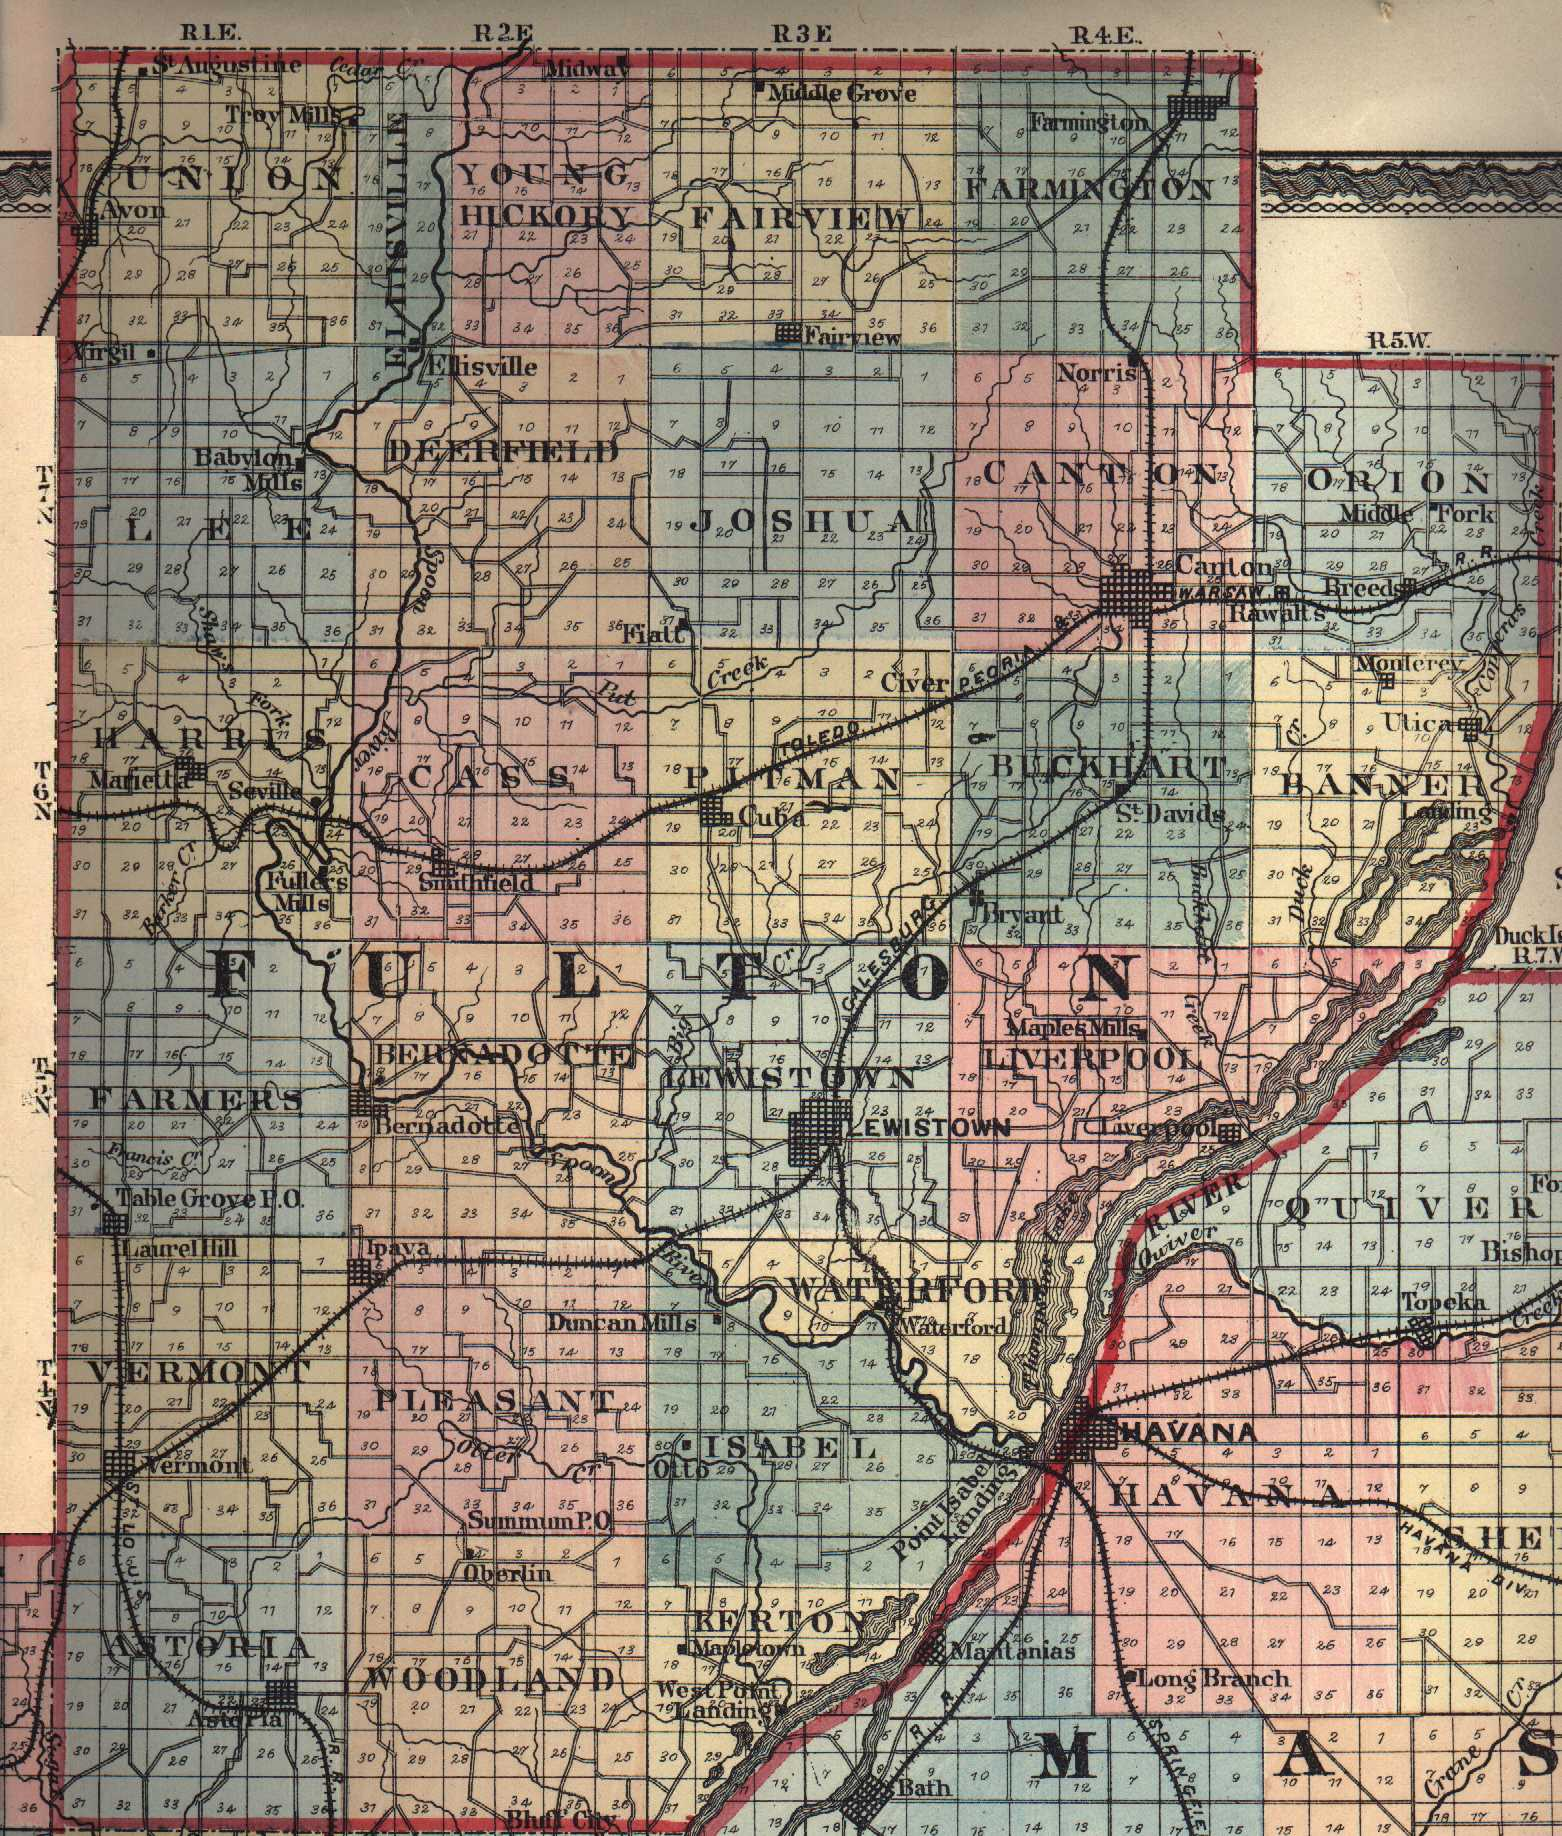 The USGenWeb Archives Digital Map Library - Illinois Maps Index.